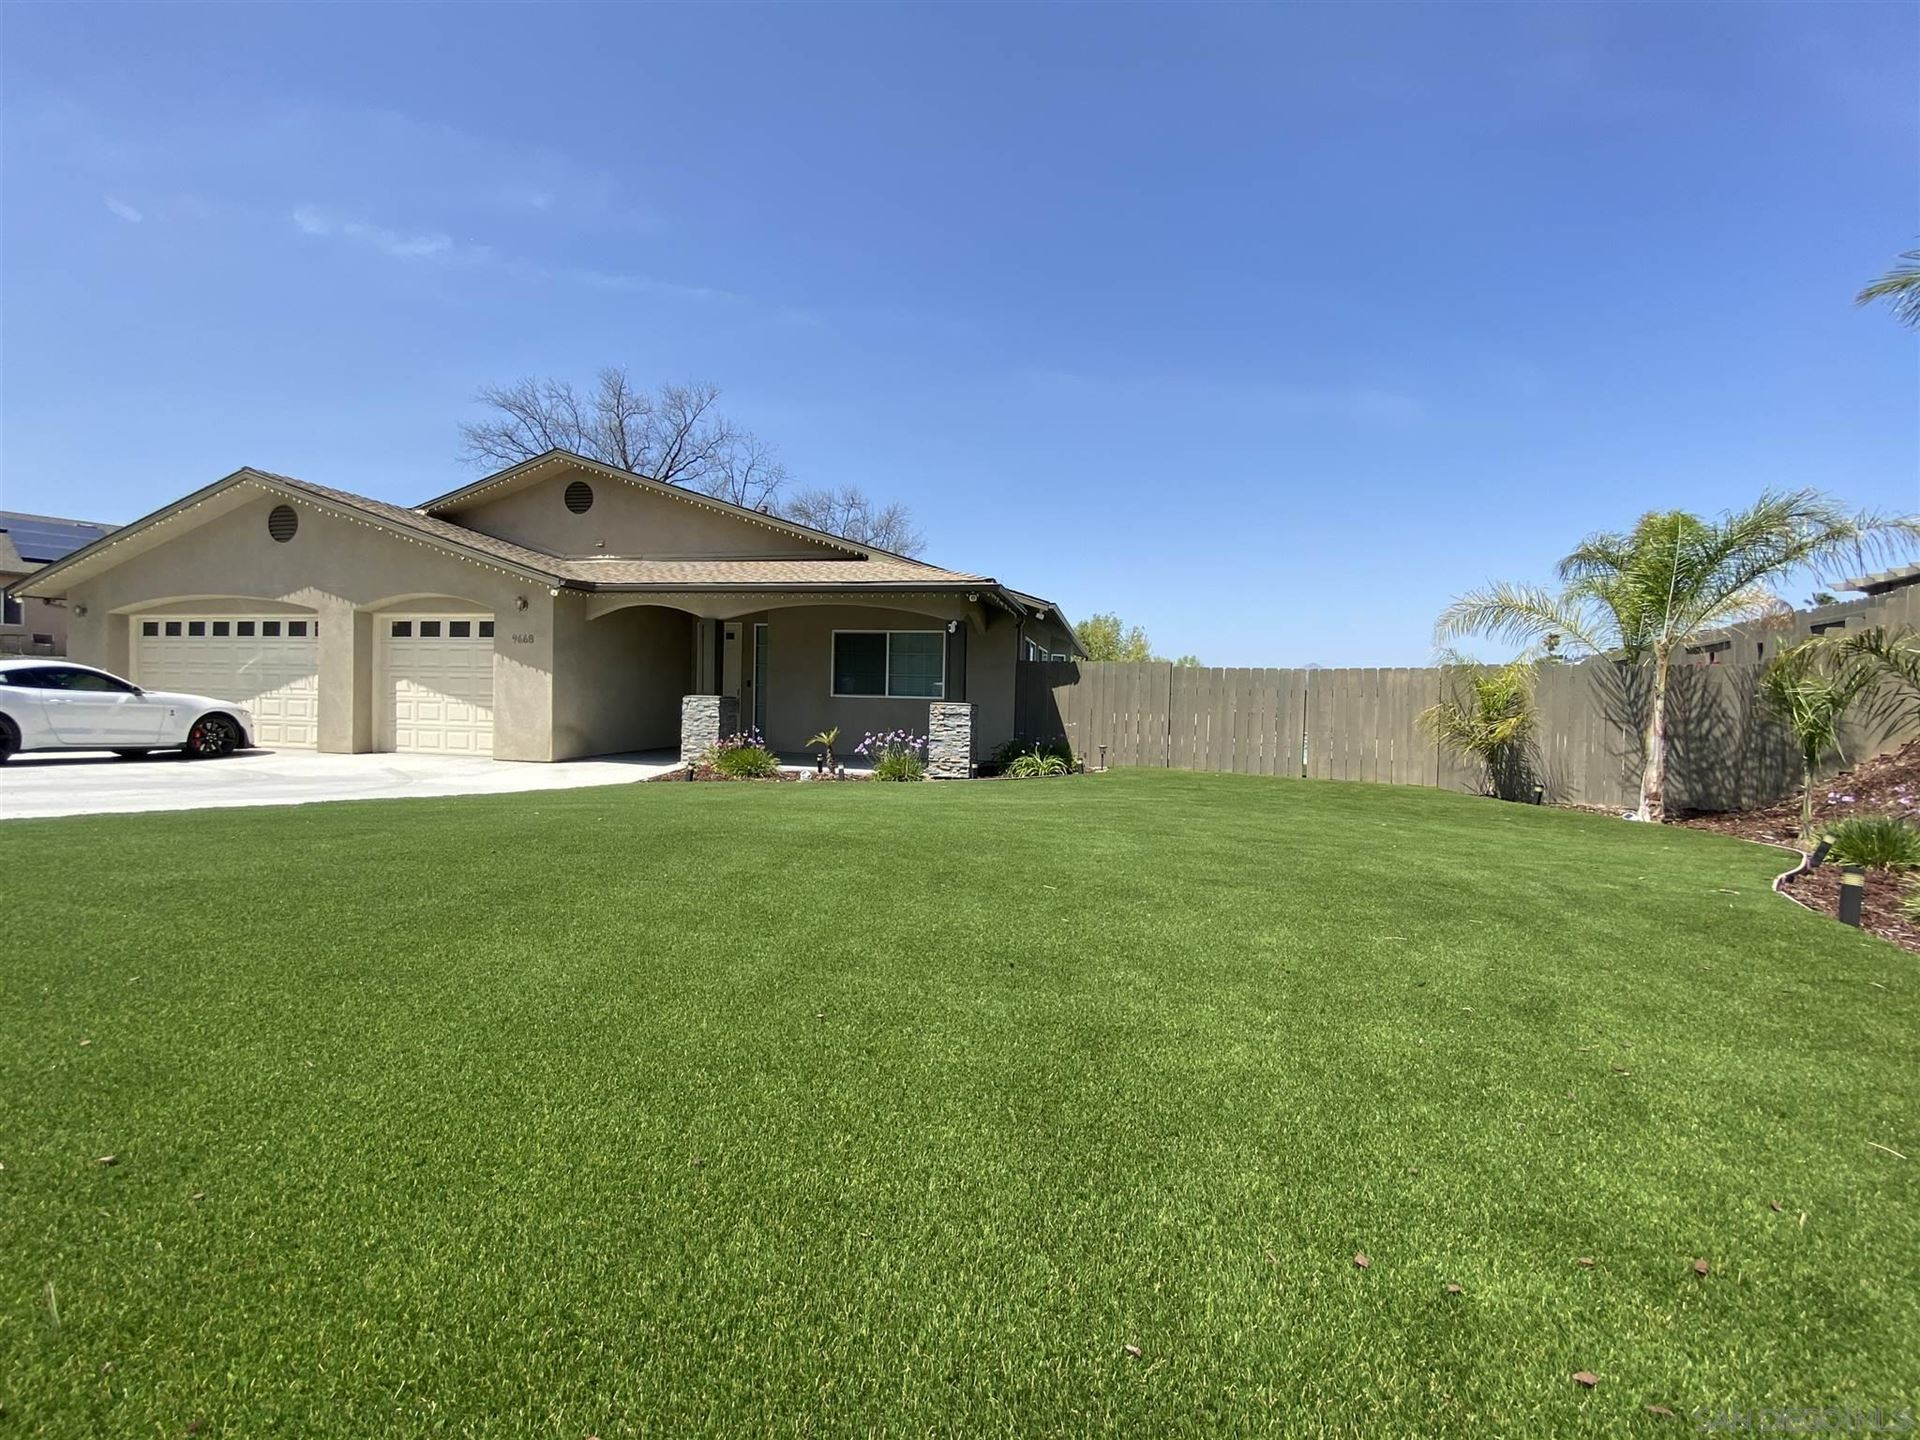 Photo of 9668 Cypress Vale Dr, Lakeside, CA 92040 (MLS # 210009342)